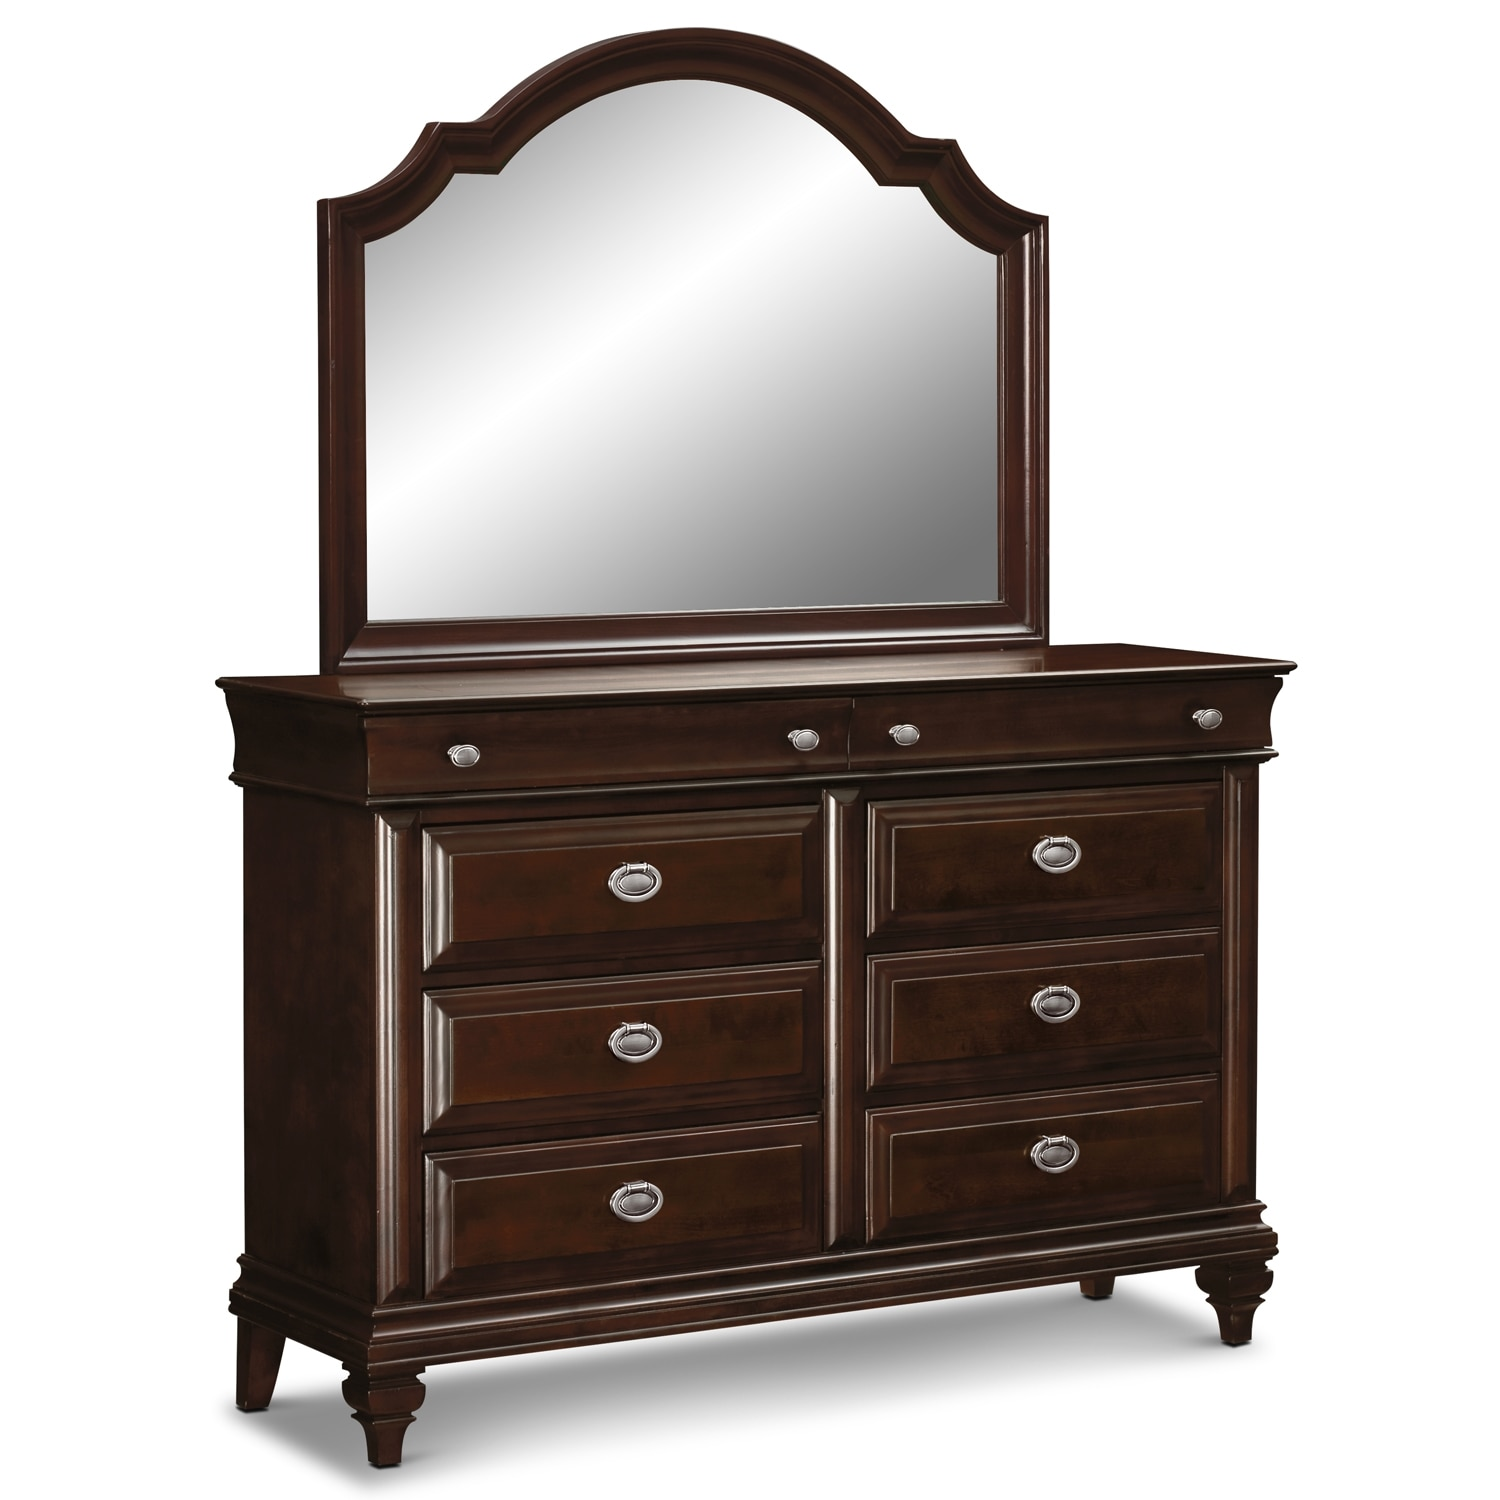 Bedroom Furniture Manhattan Dresser Mirror